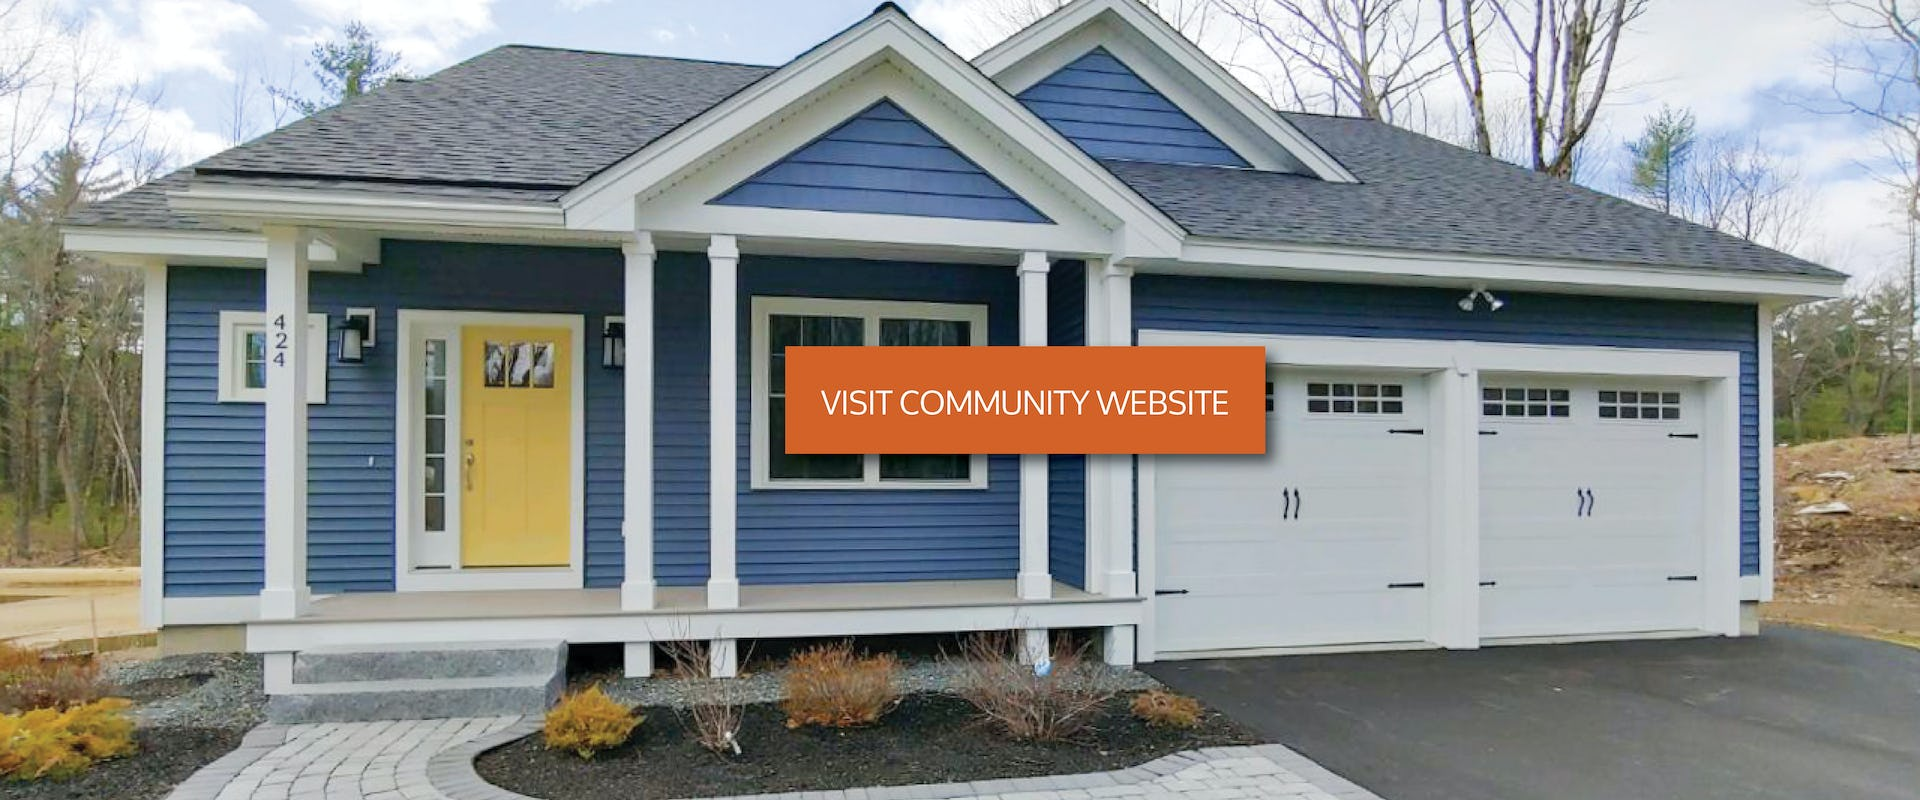 blue ranch style home with yellow door and button that reads visit community website